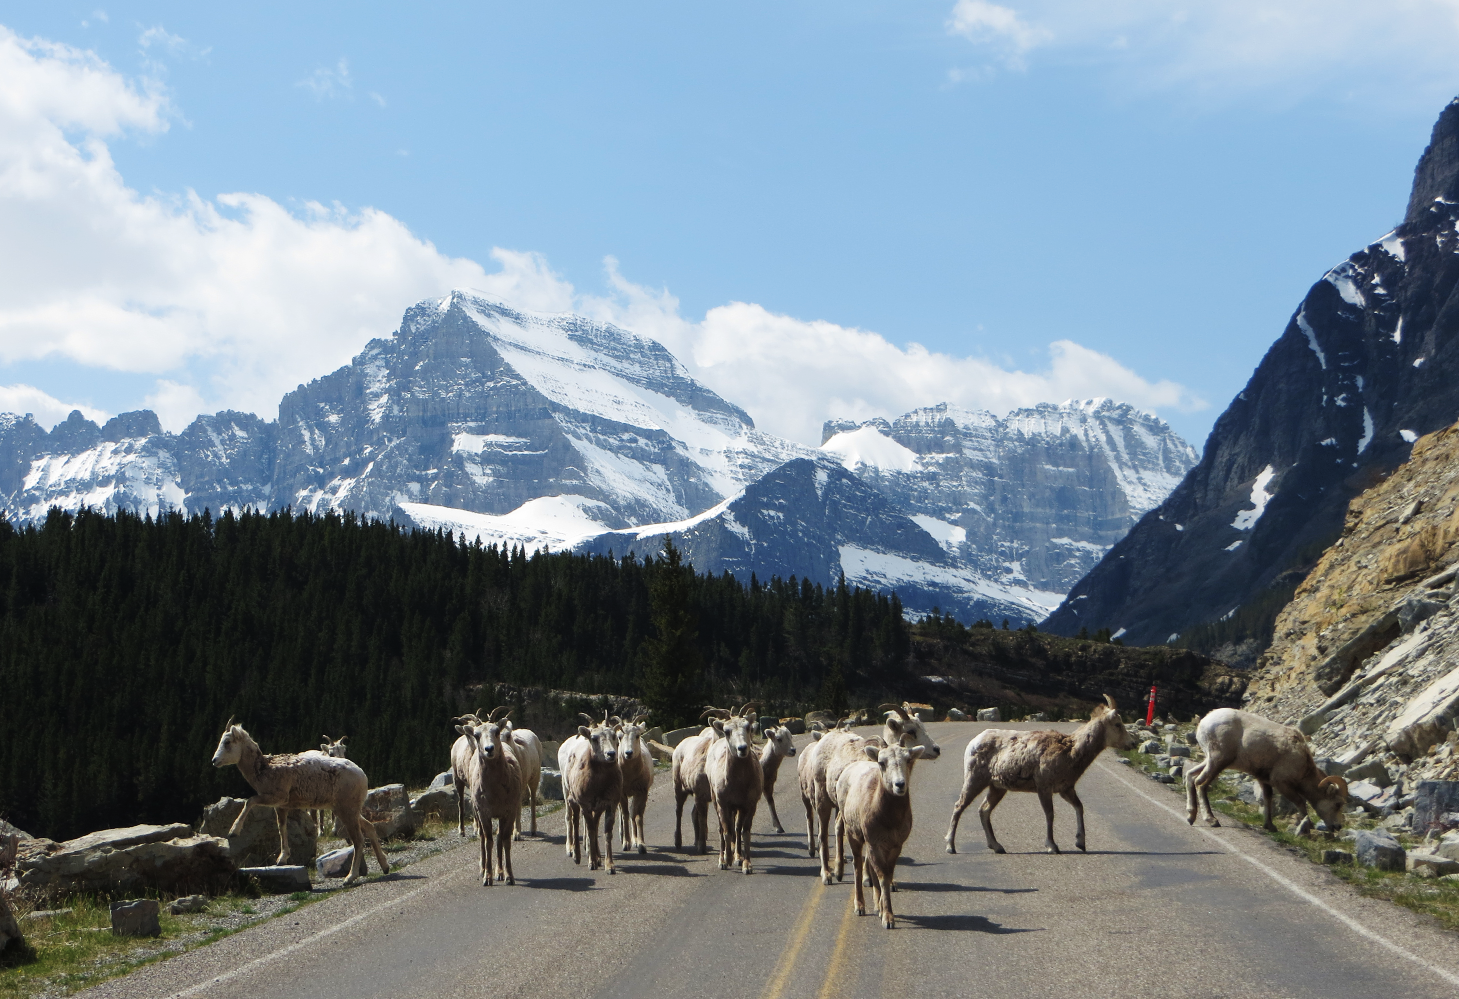 A flock of bighorn sheep traverse a road with snowcapped mountains in the distance